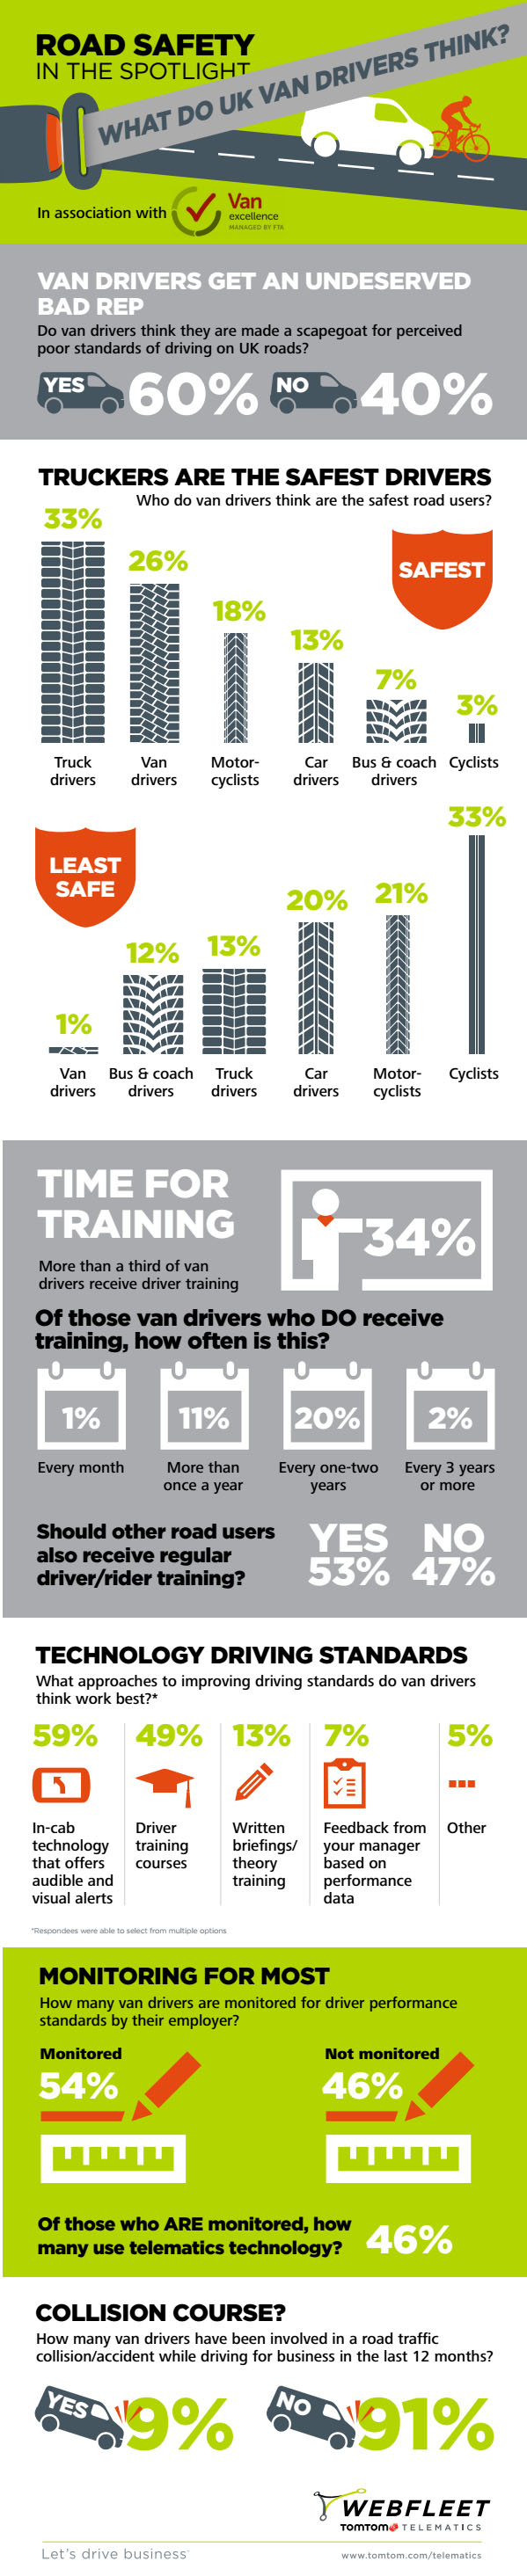 TTT van driver research infographic1